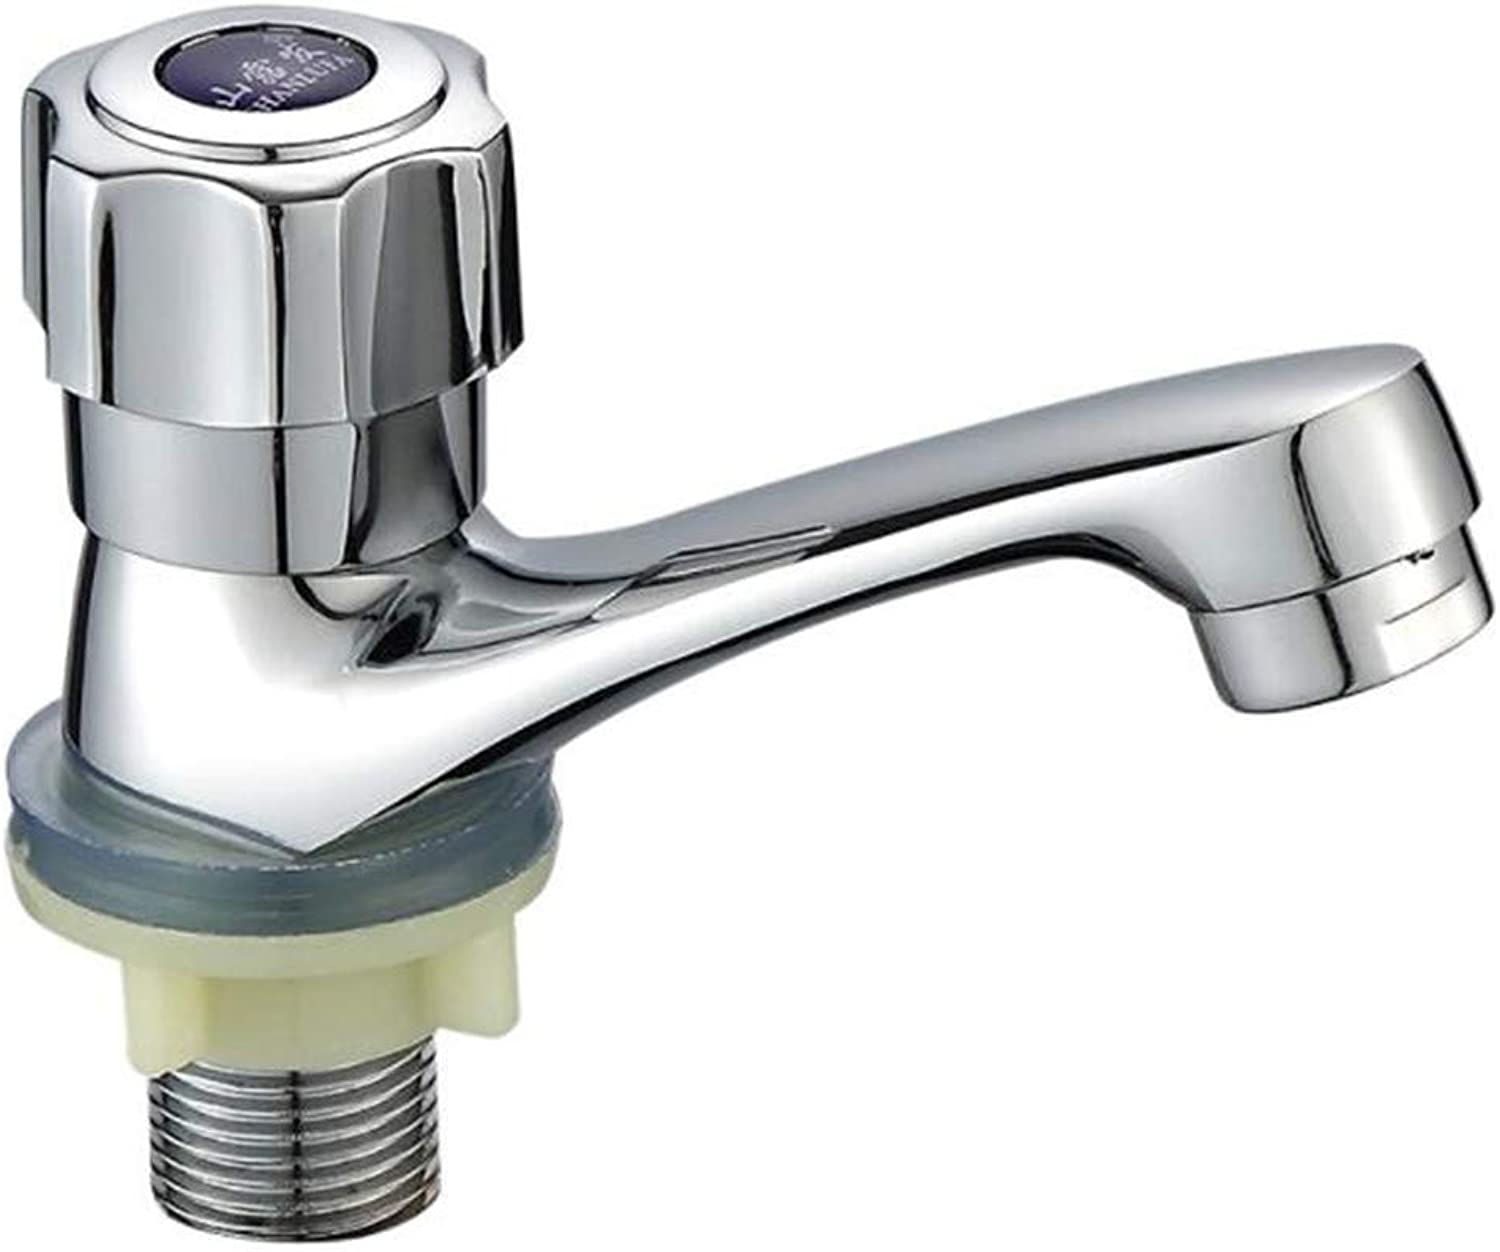 Bathroom Sink Basin Lever Mixer Tap Full Copper Single Cold Water Faucet Washbasin Faucet